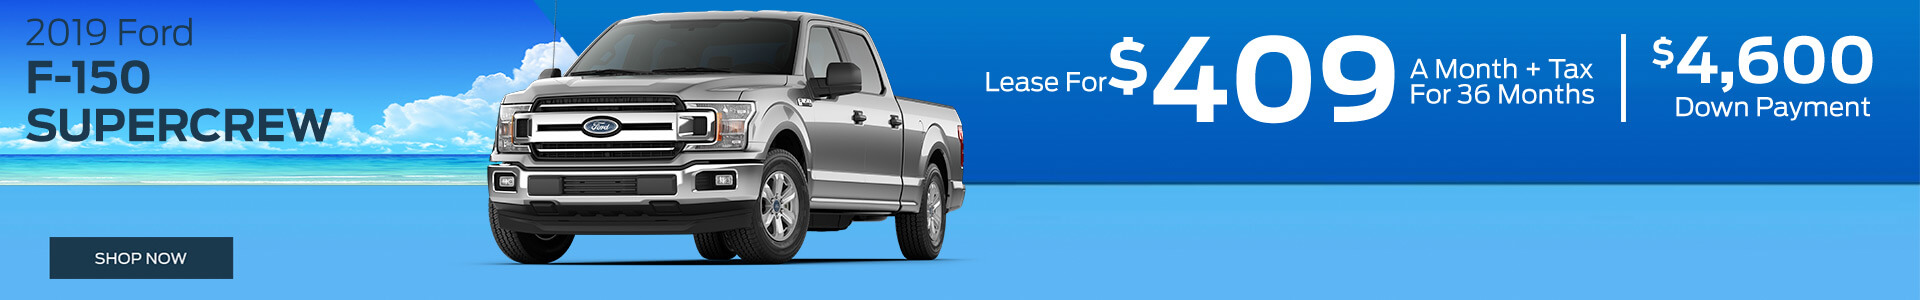 F-150 - Lease for $409